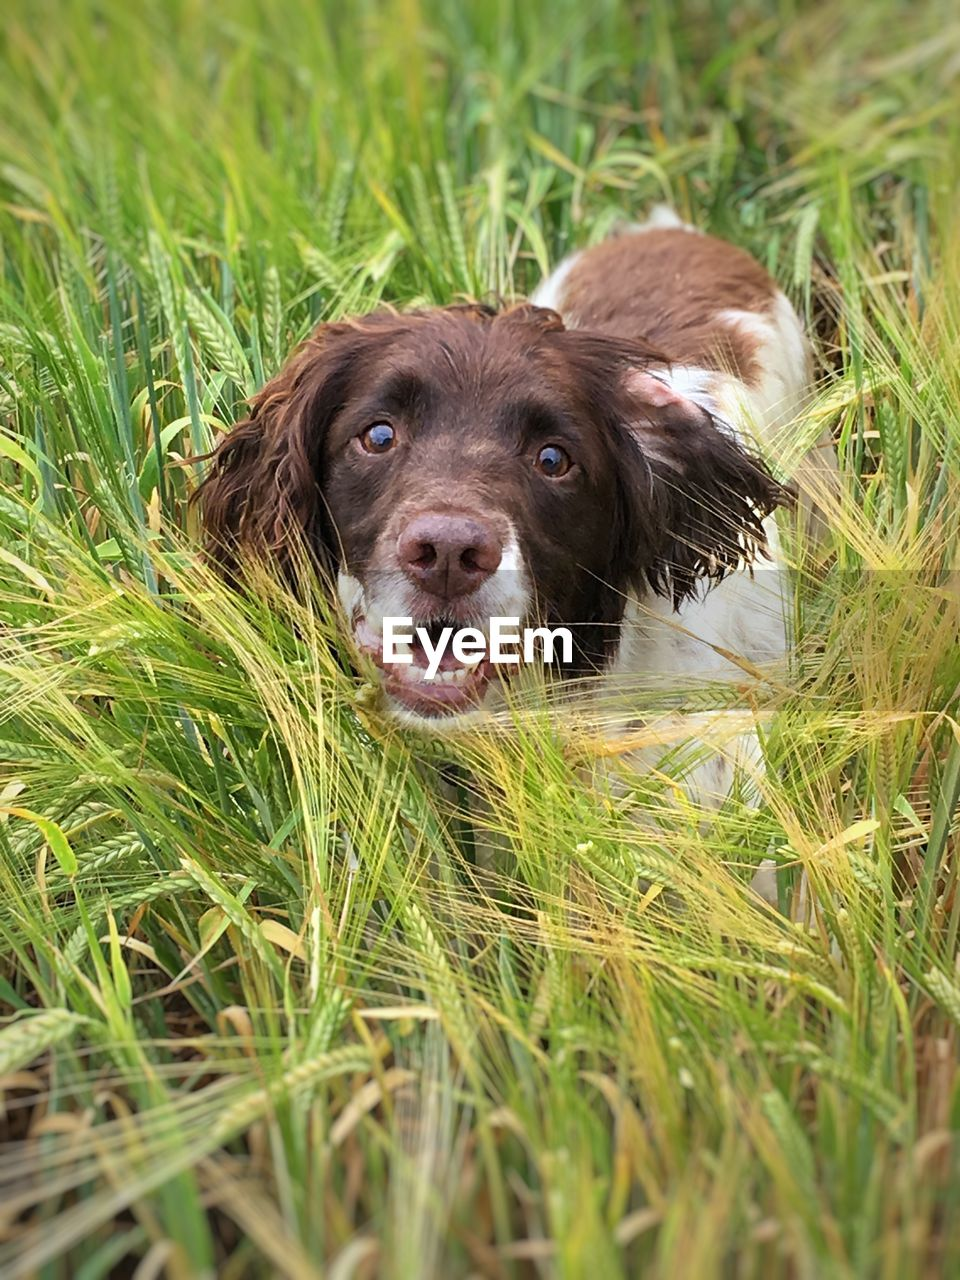 Portrait Of Dog Amidst Plants On Field